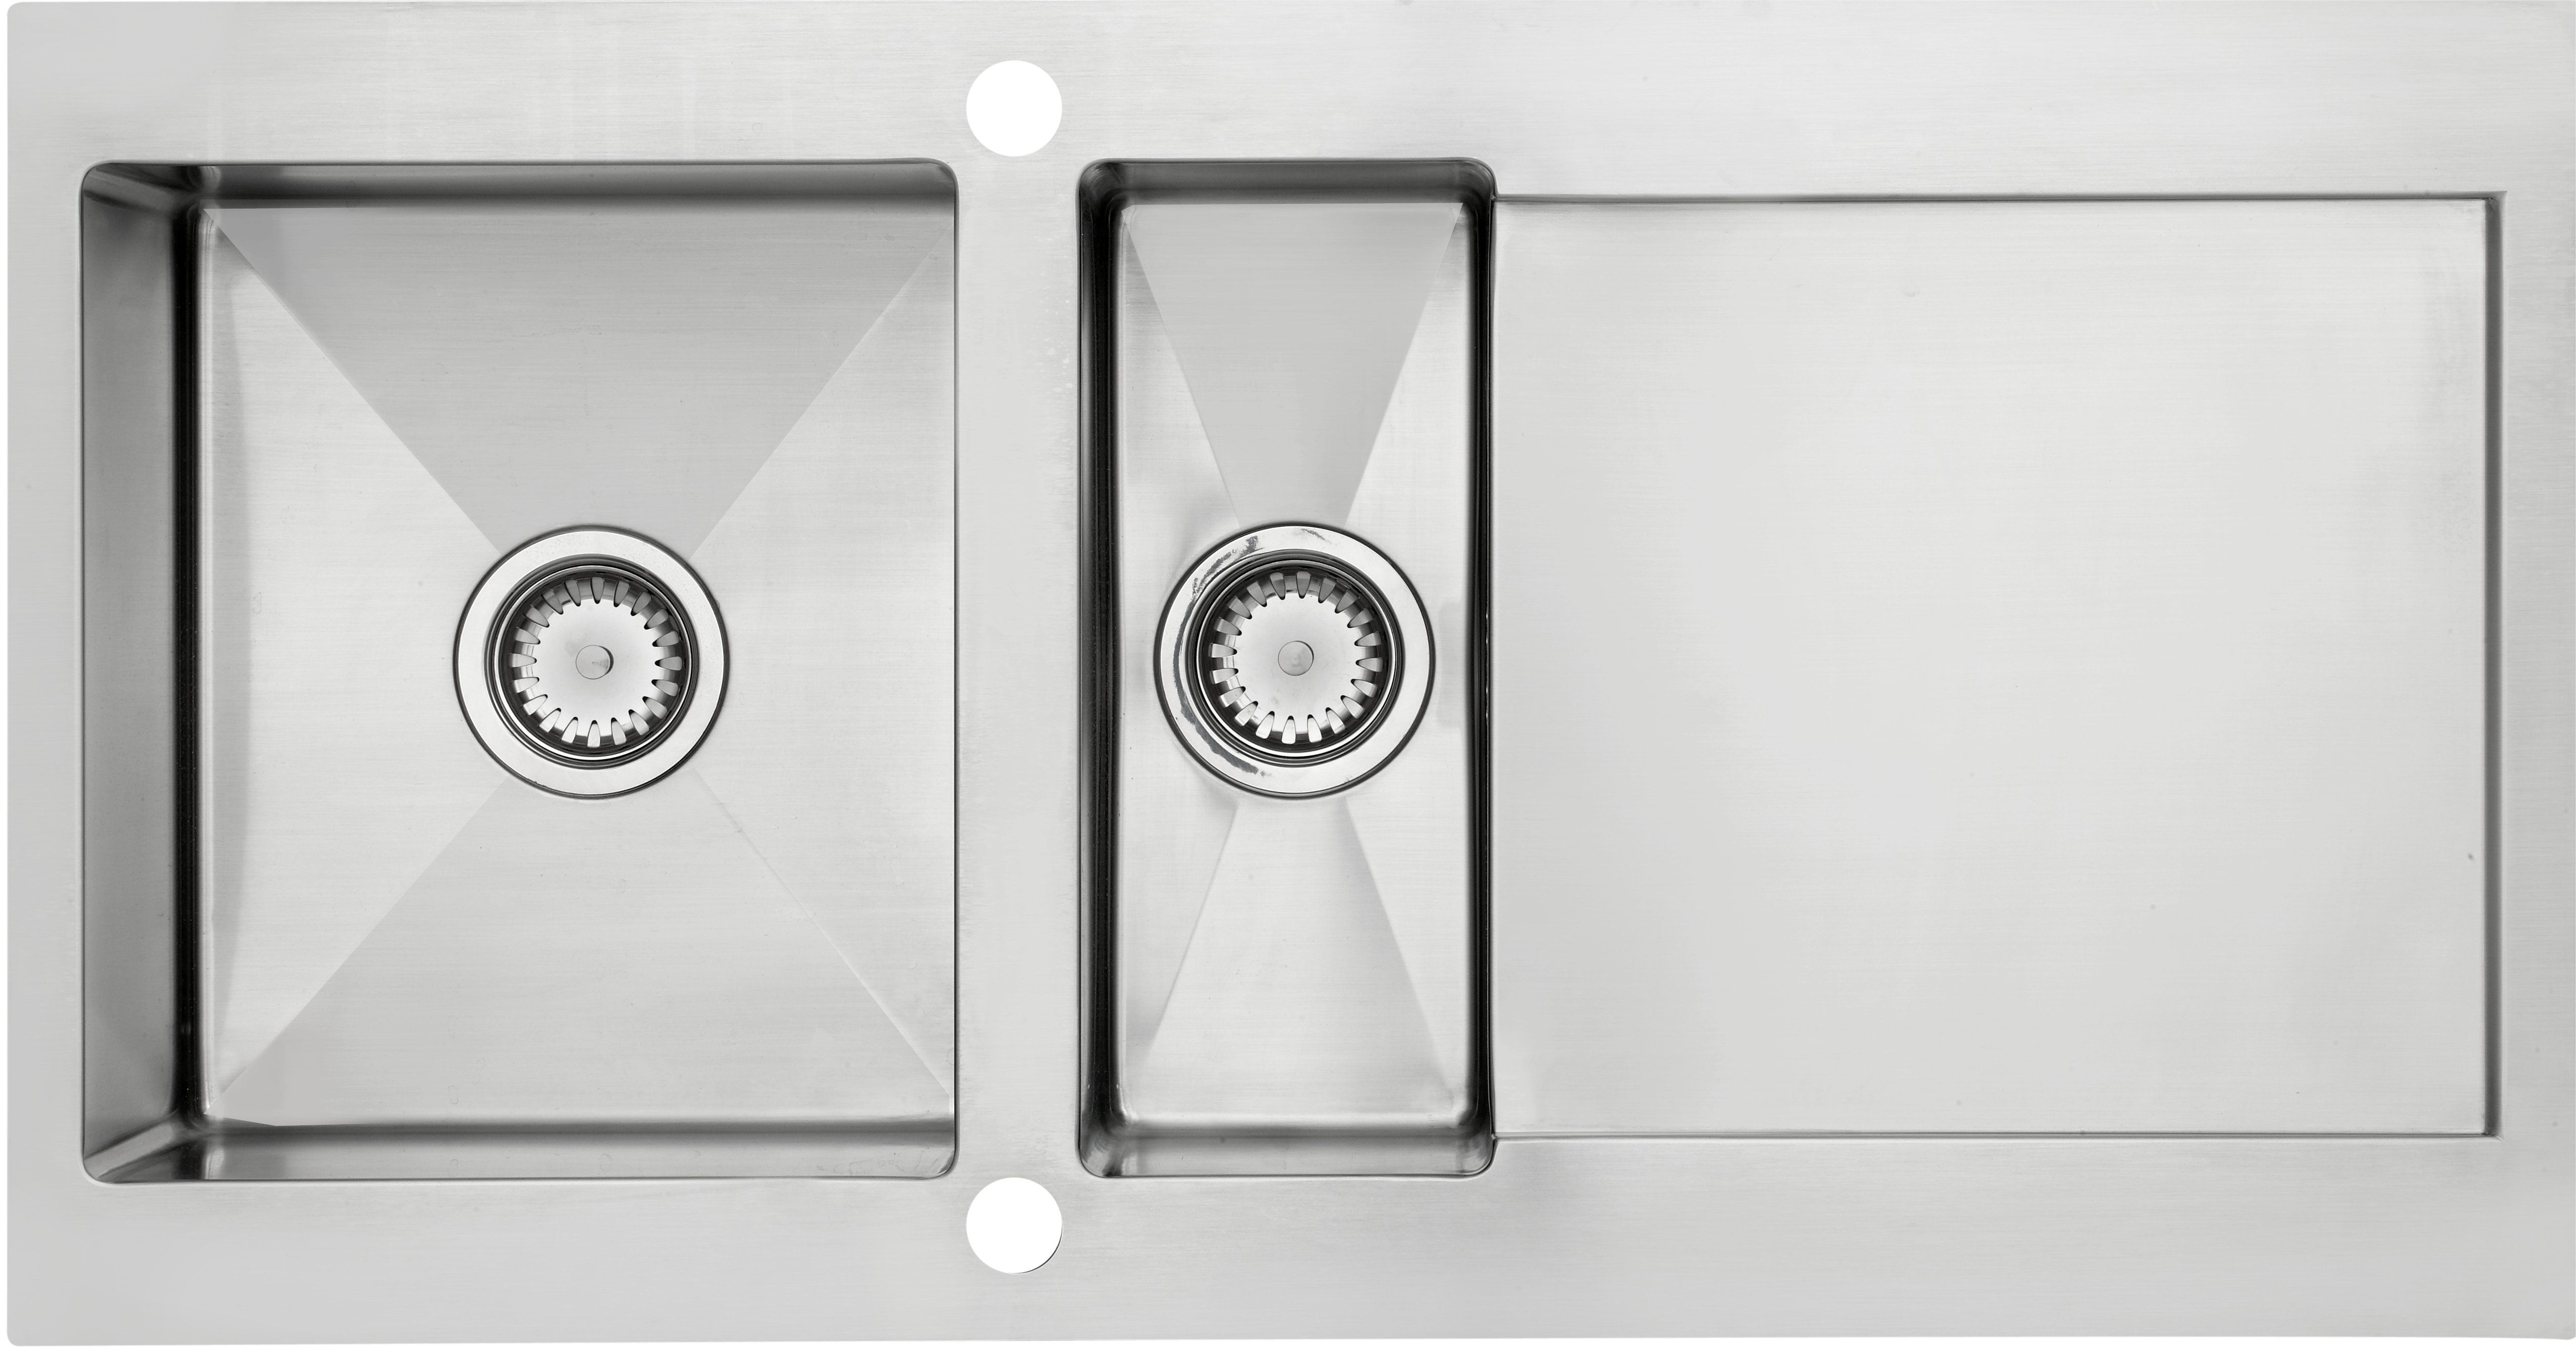 Tuscan Arezzo T36 Sink Stainless Steel Sink The Arezzo Range Come